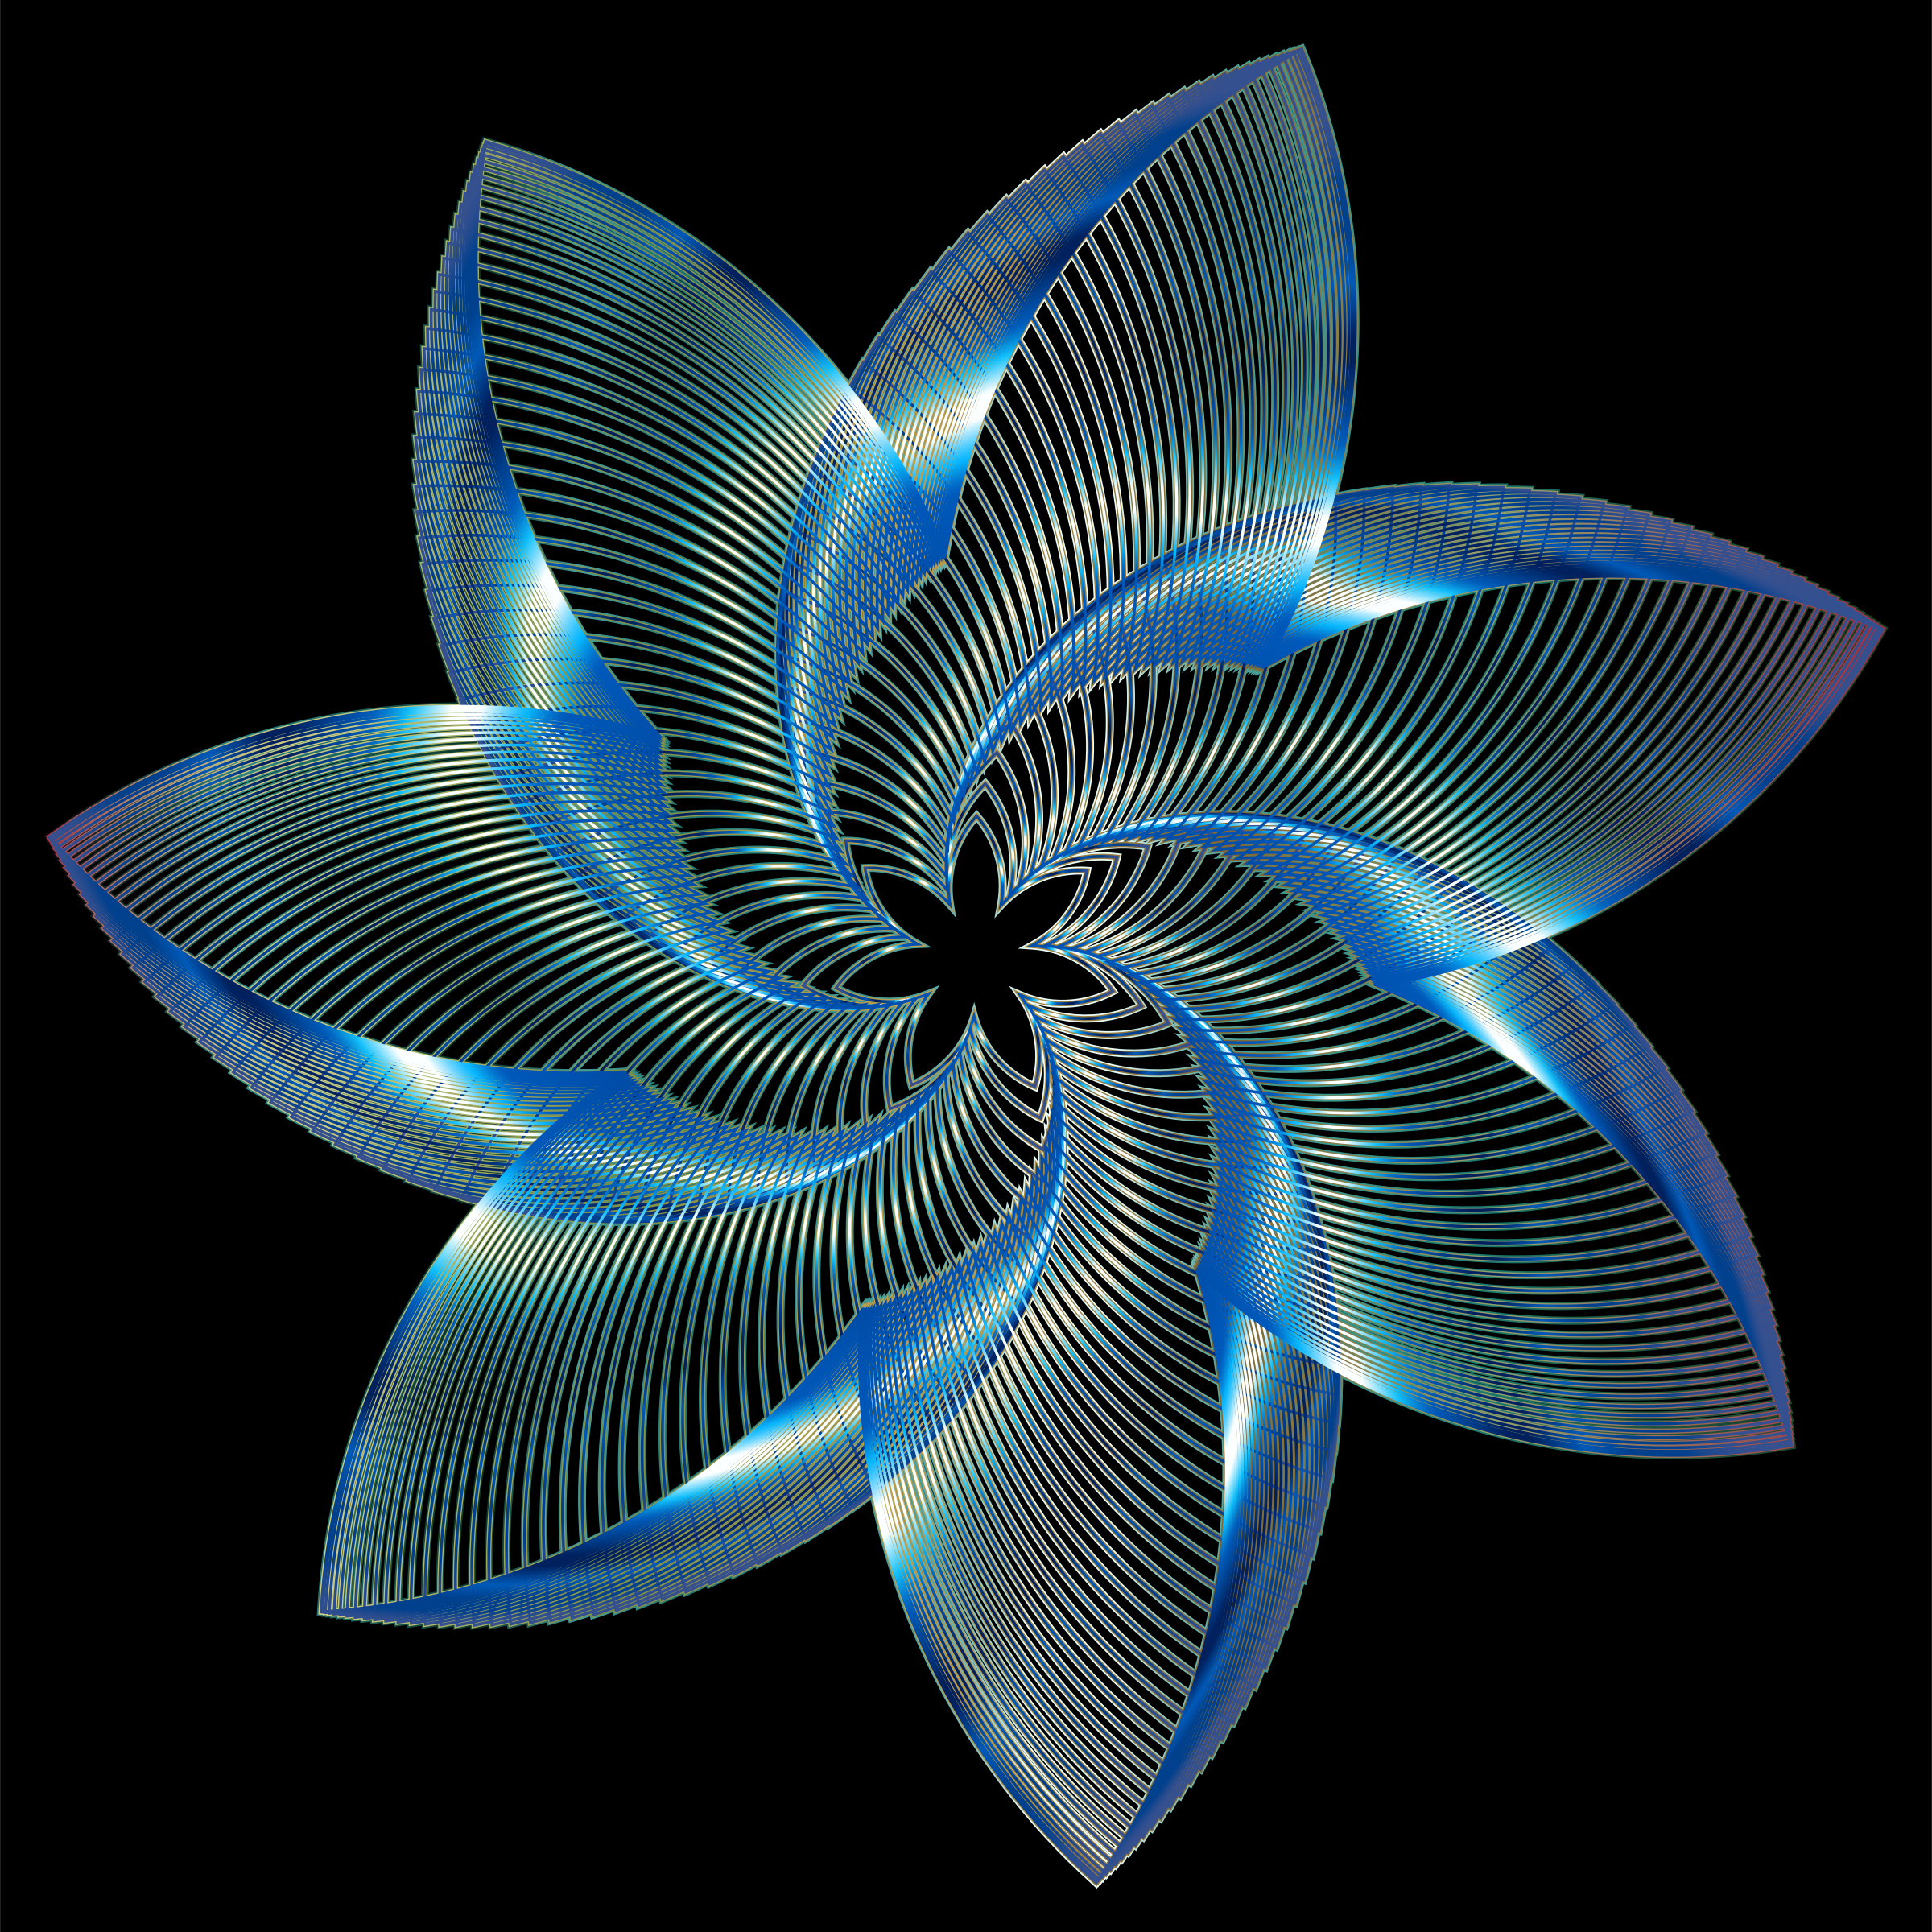 Prismatic Flower Line Art 8 by GDJ